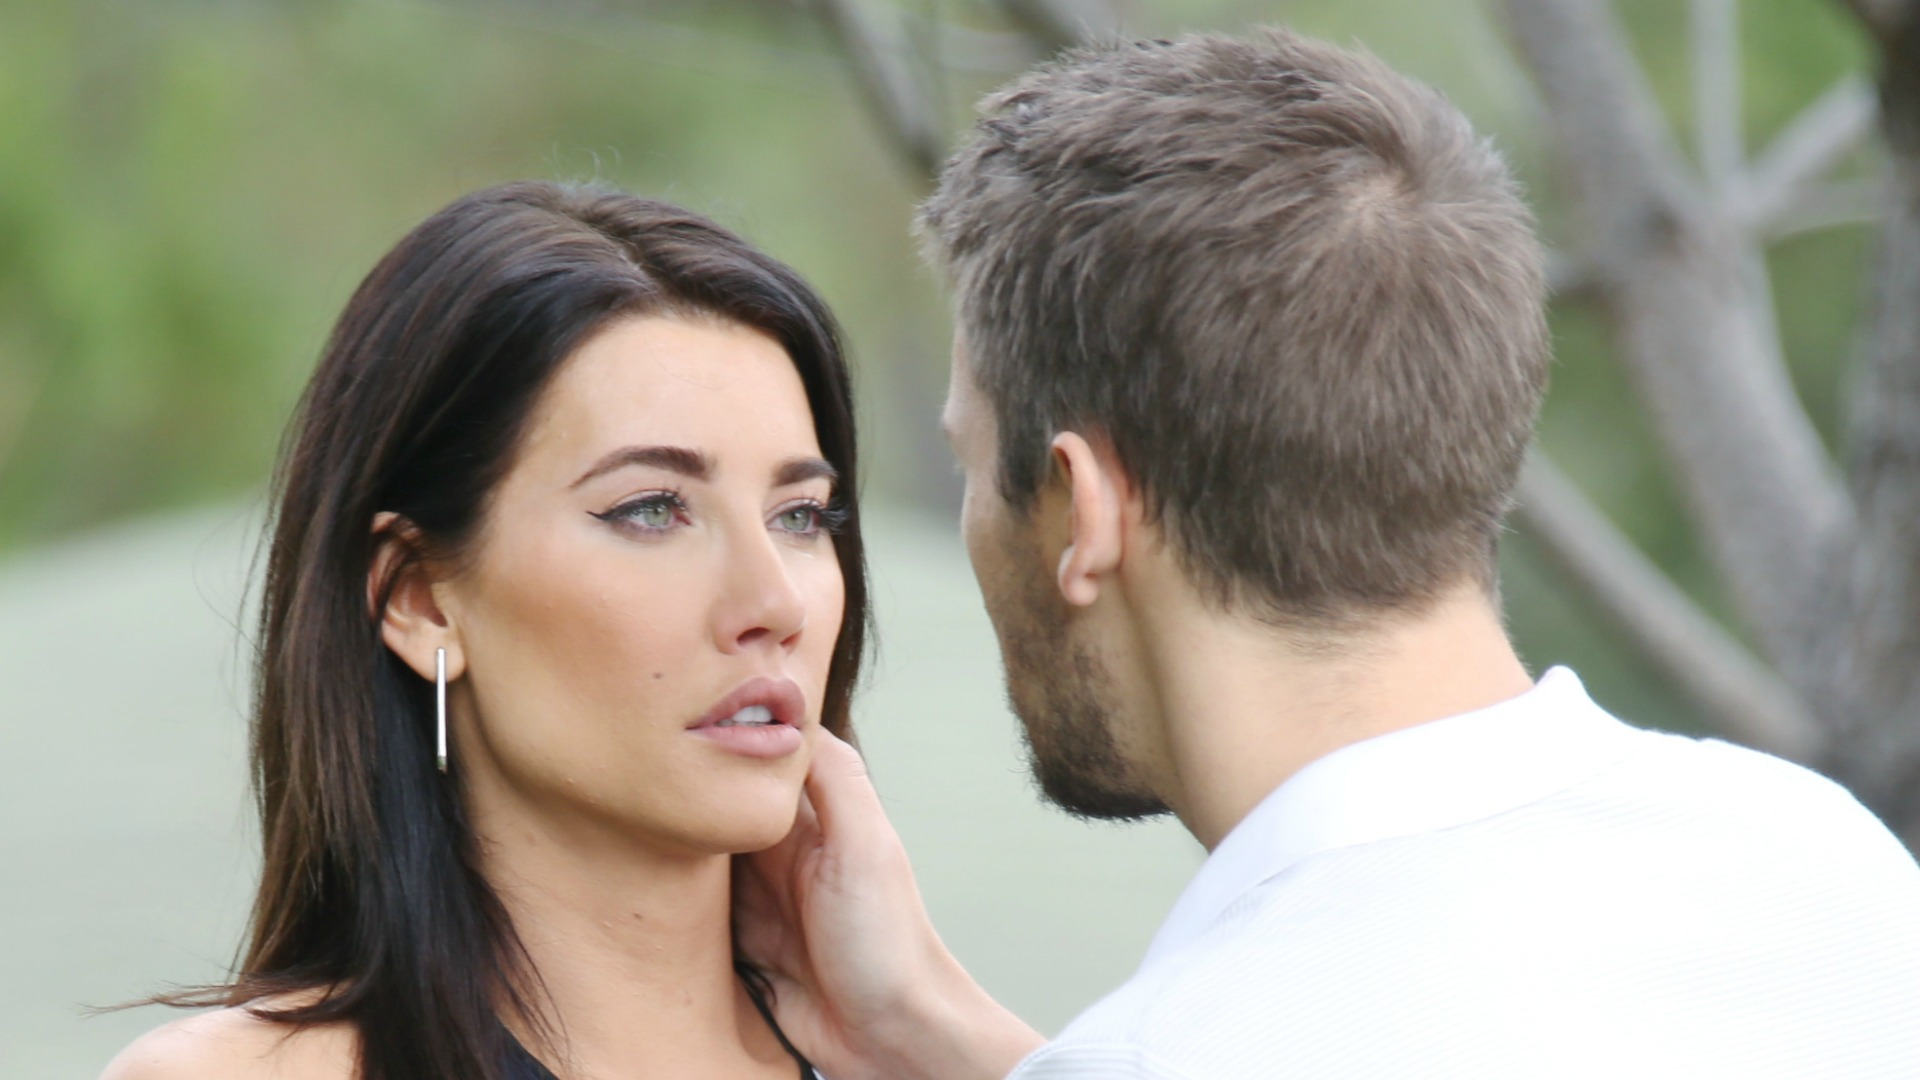 Liam gives Steffy an option when he finds her alone on the beach contemplating her marriage.